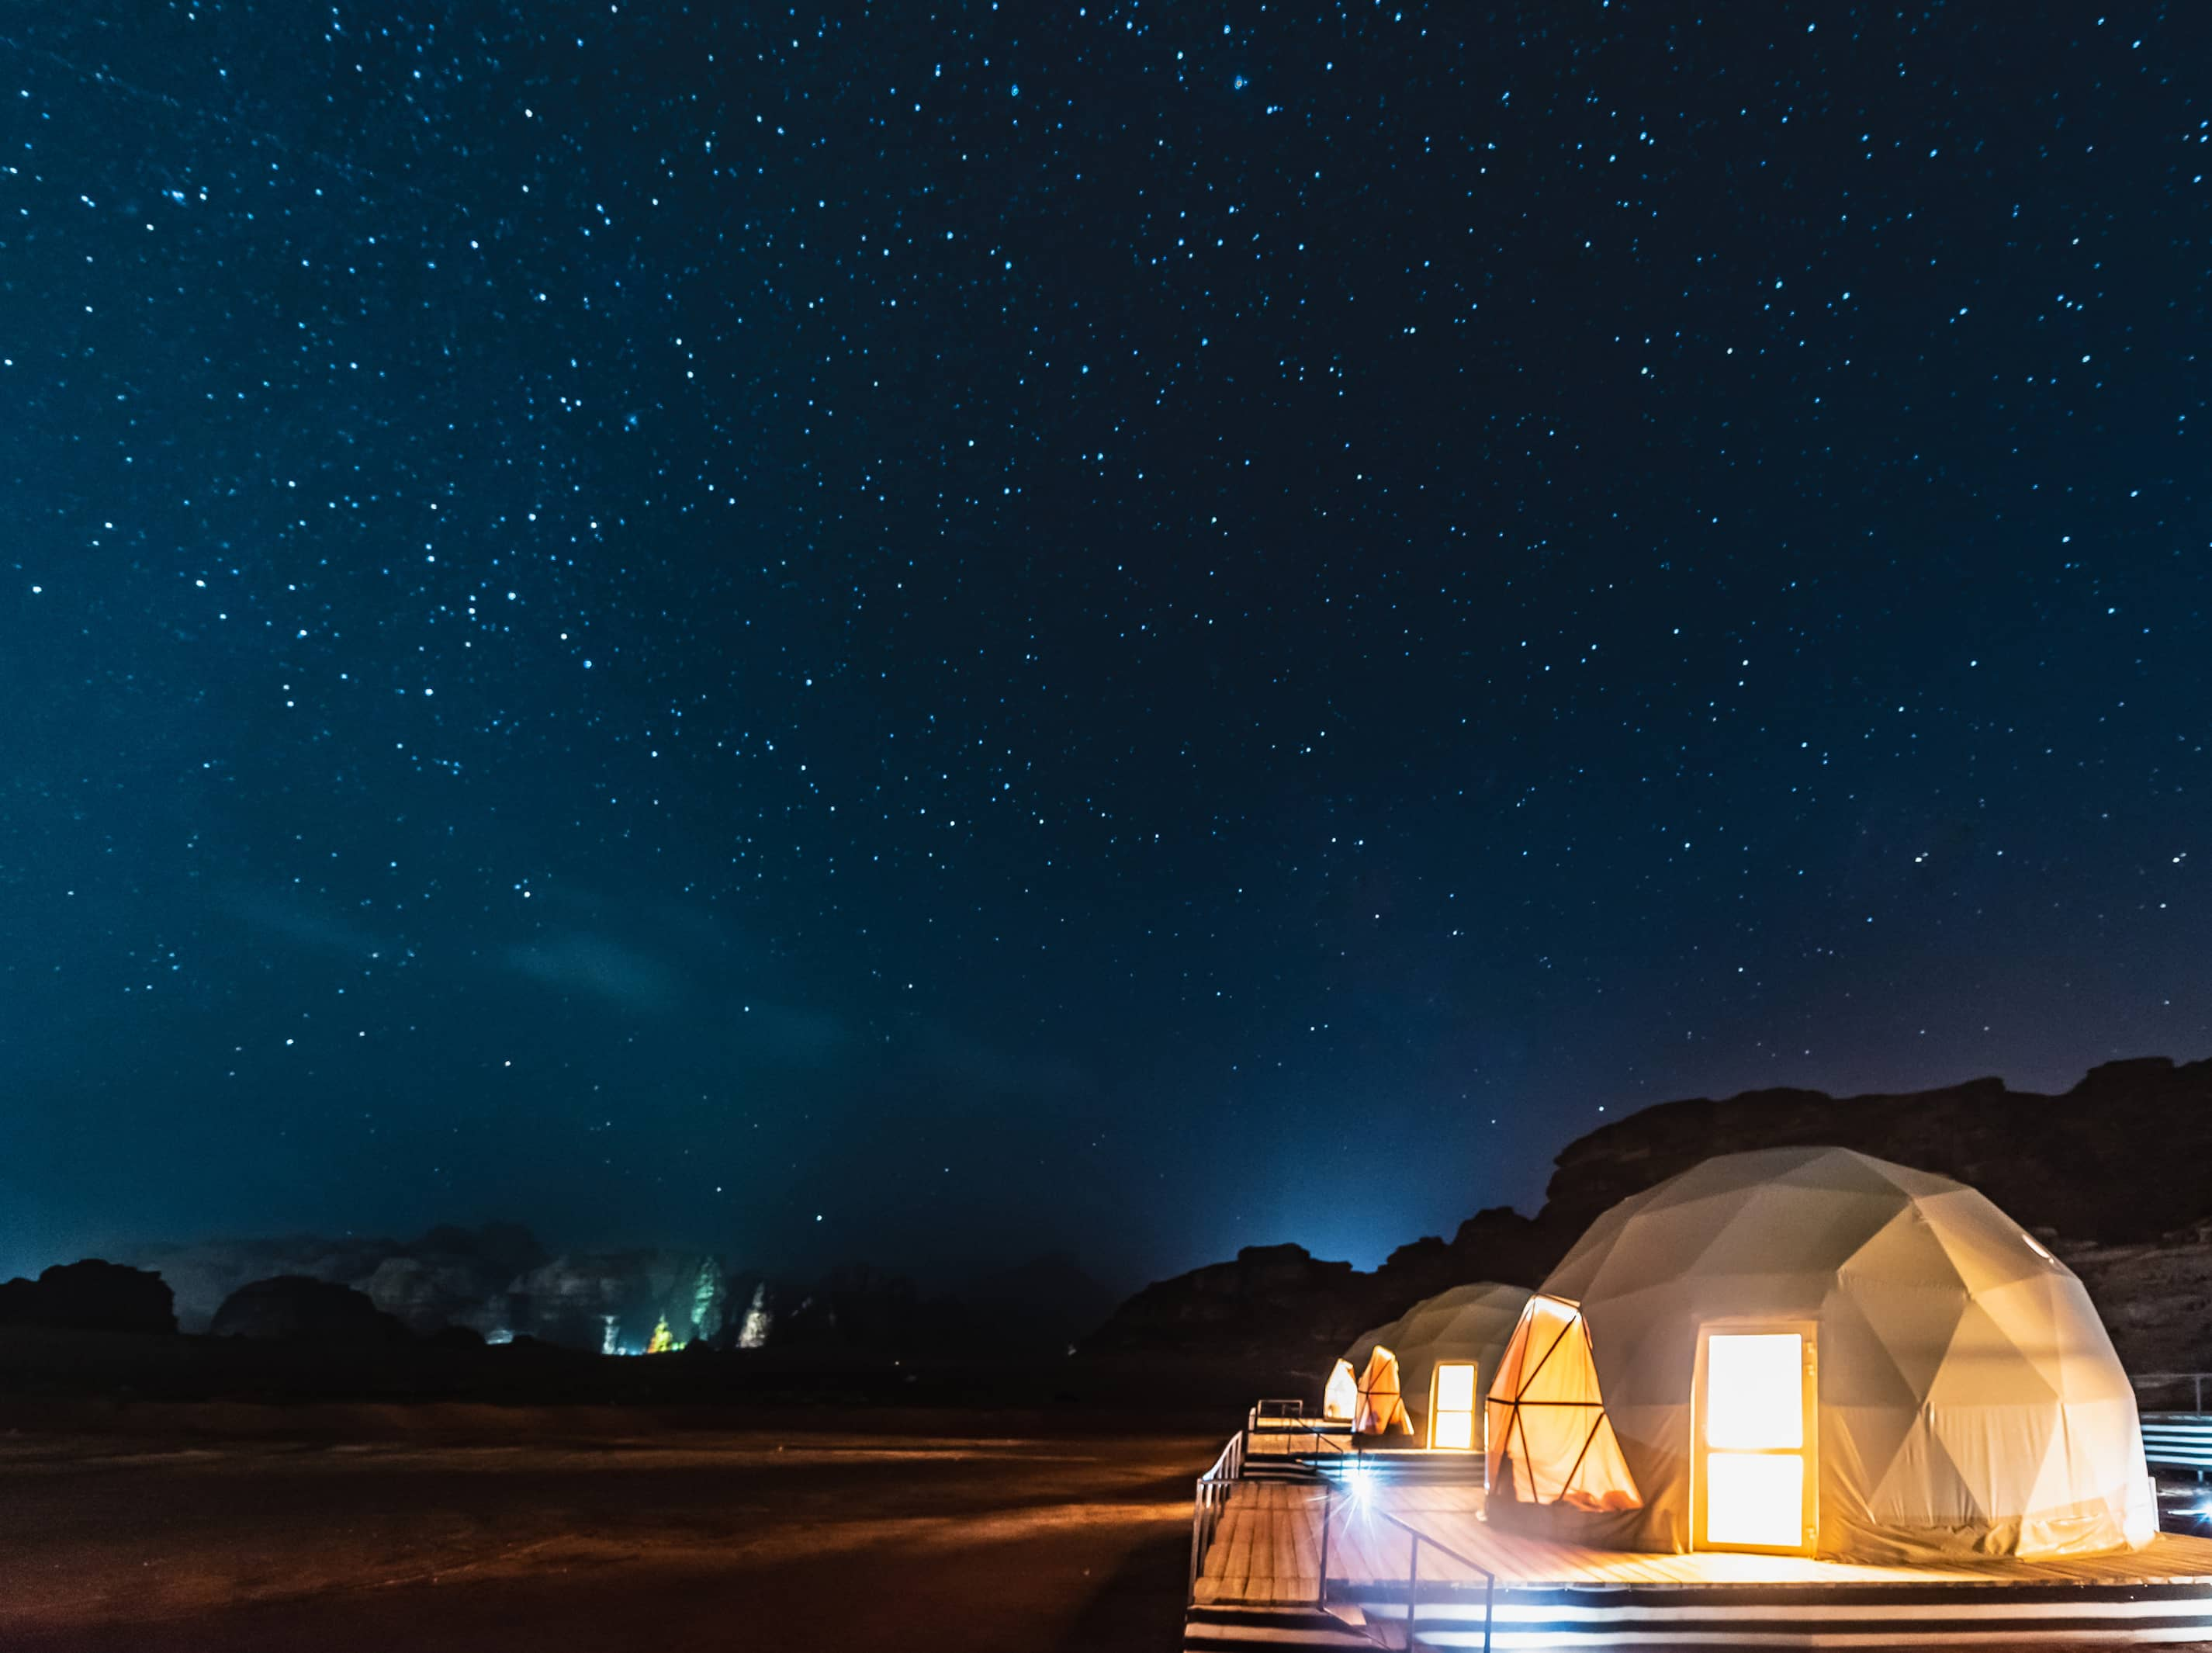 Stay at a luxury desert camp in spectacular Wadi Rum.